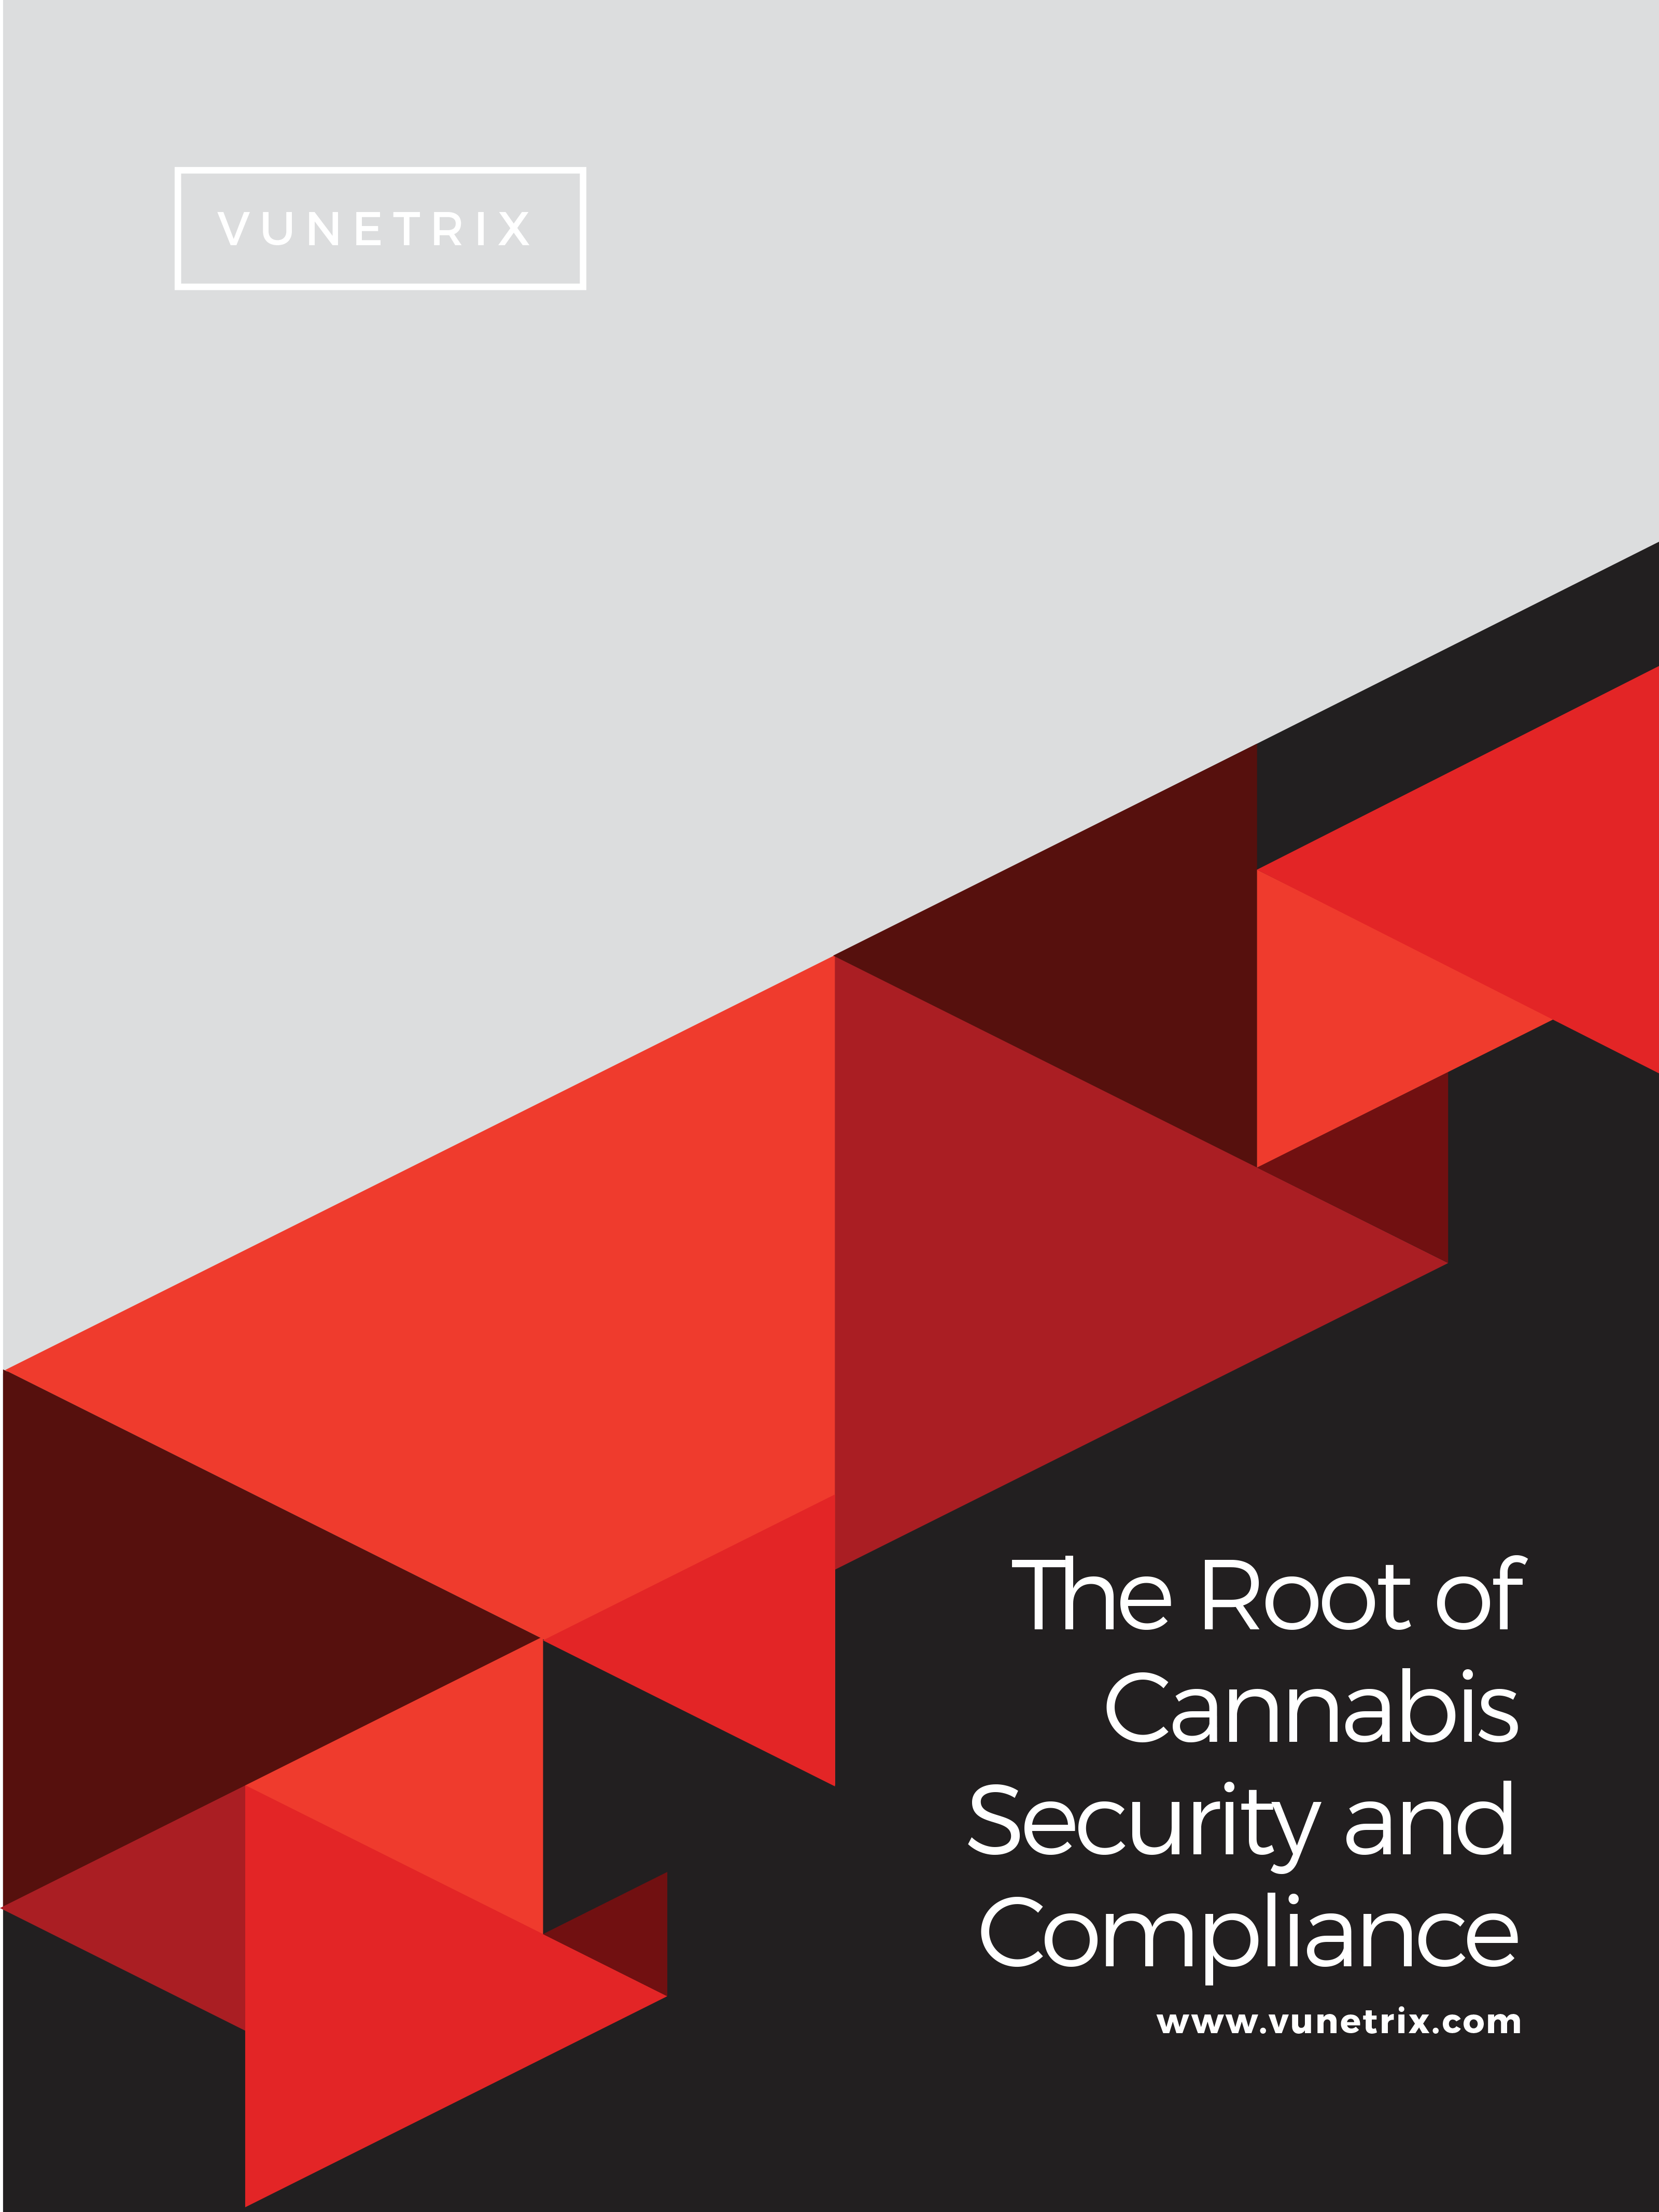 The Root of Cannabis Security and Compliance